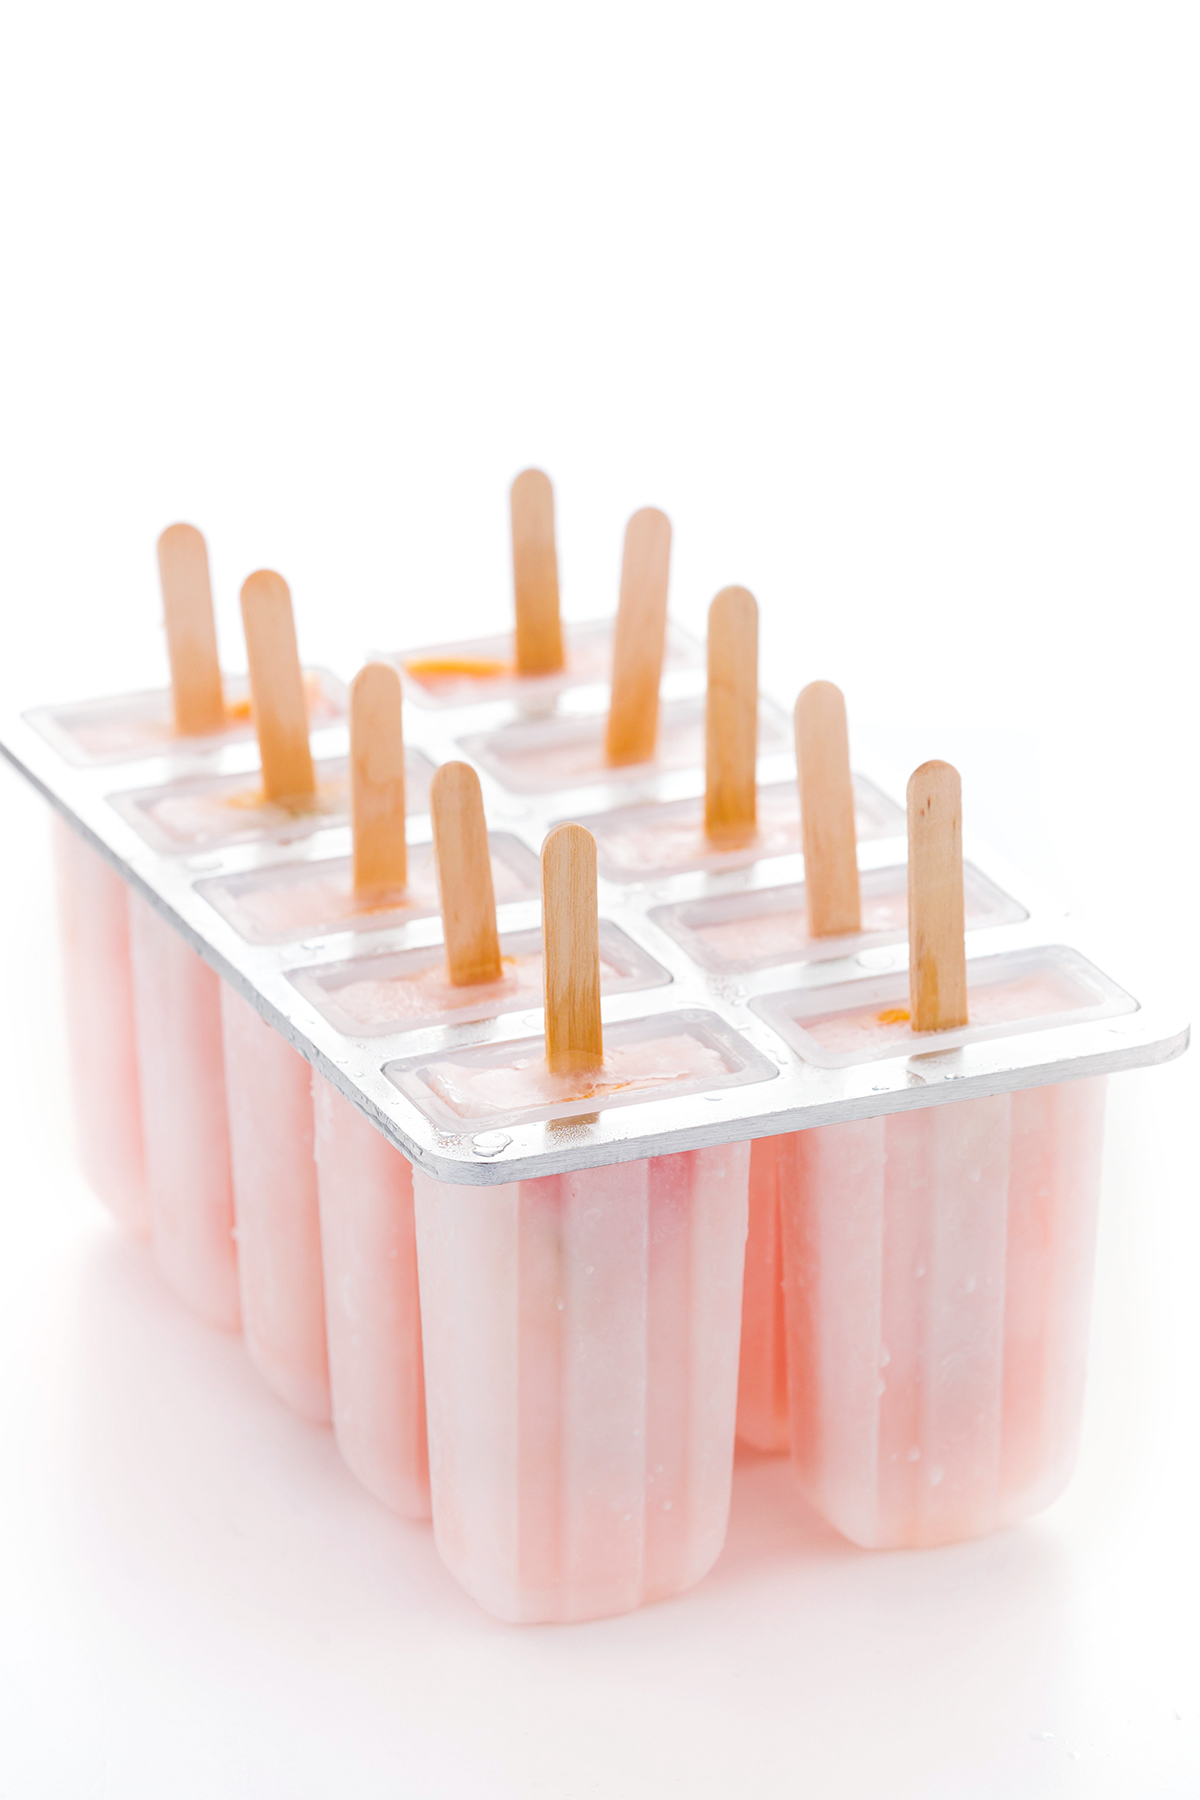 Ricetta GHIACCIOLI al POMPELMO senza zucchero - how to make PINK GRAPEFRUIT POPSICLES sugarfree